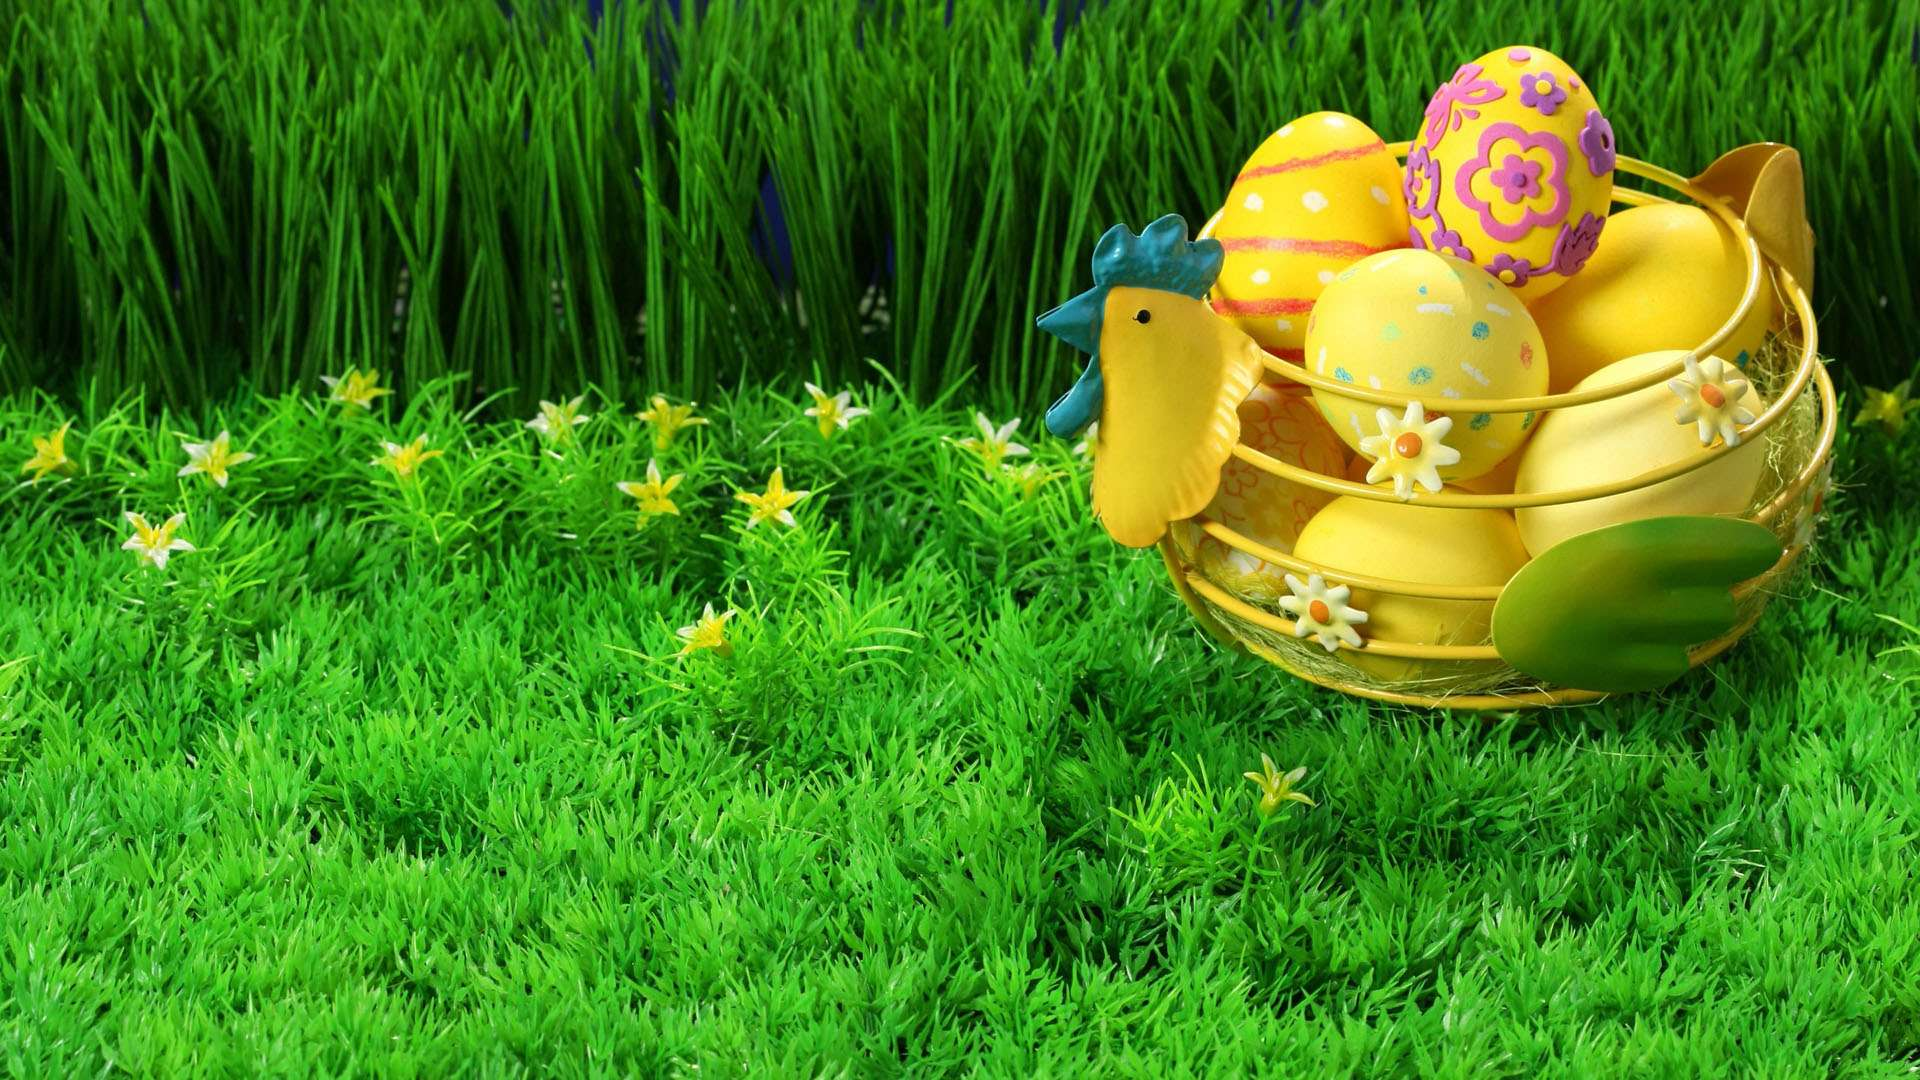 Painted Easter Eggs in a Basket in Grass HD Wallpaper 1920x1080